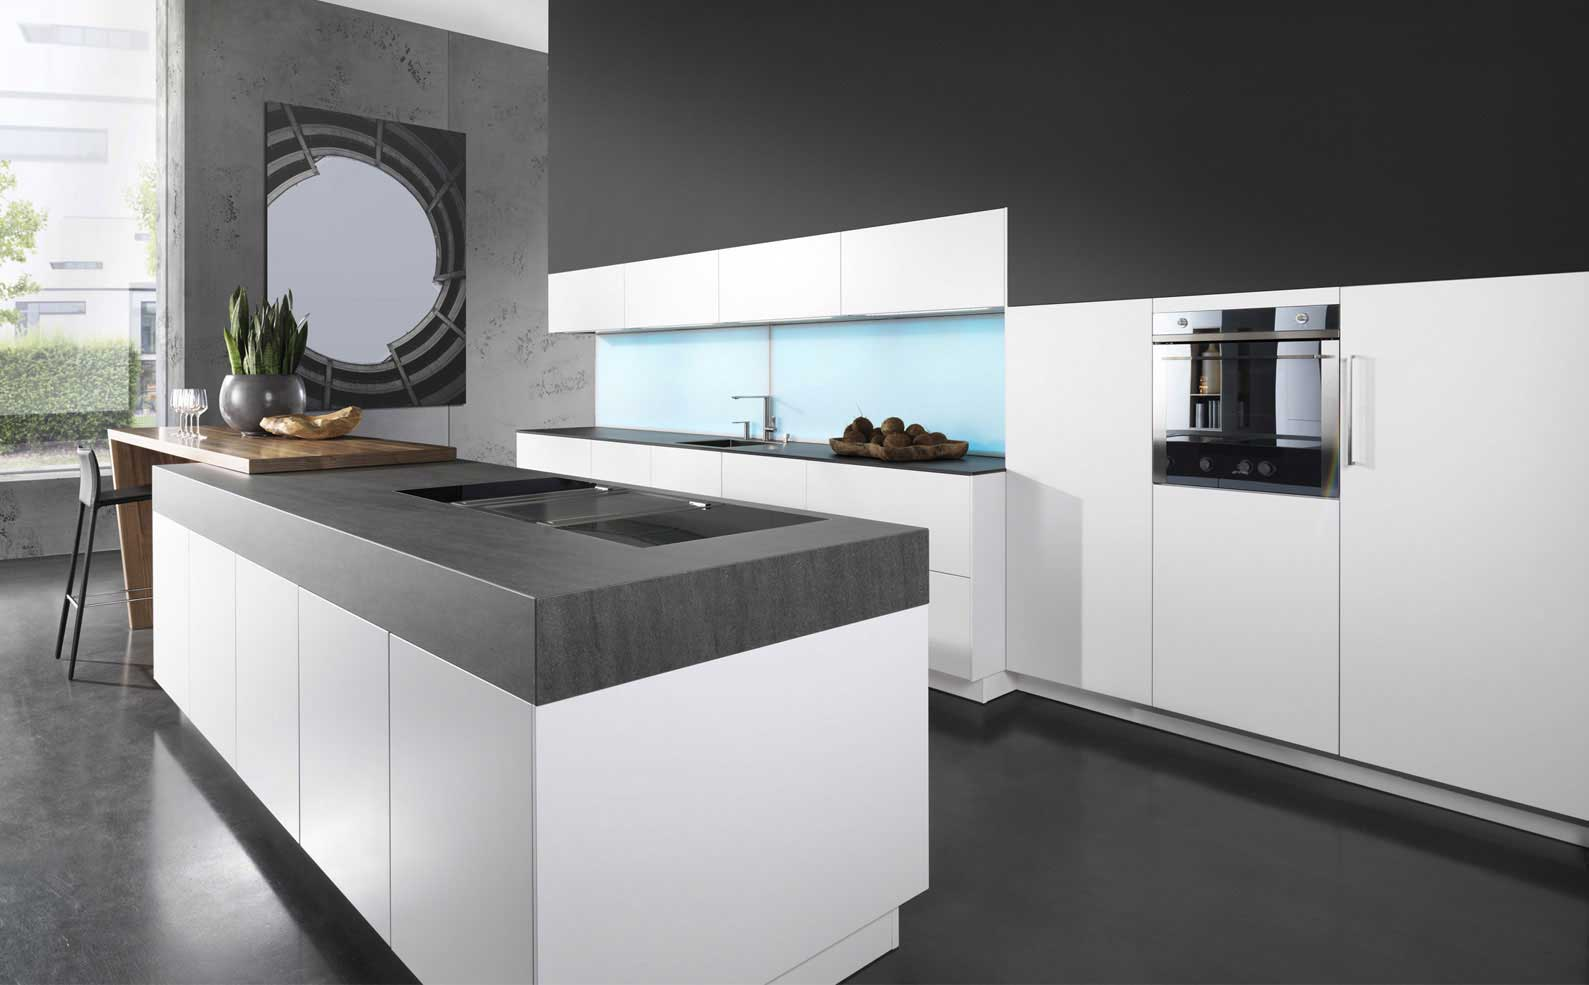 Hoogglans Keuken Forum Cambia Kitchen Rational Wood Furniture Biz